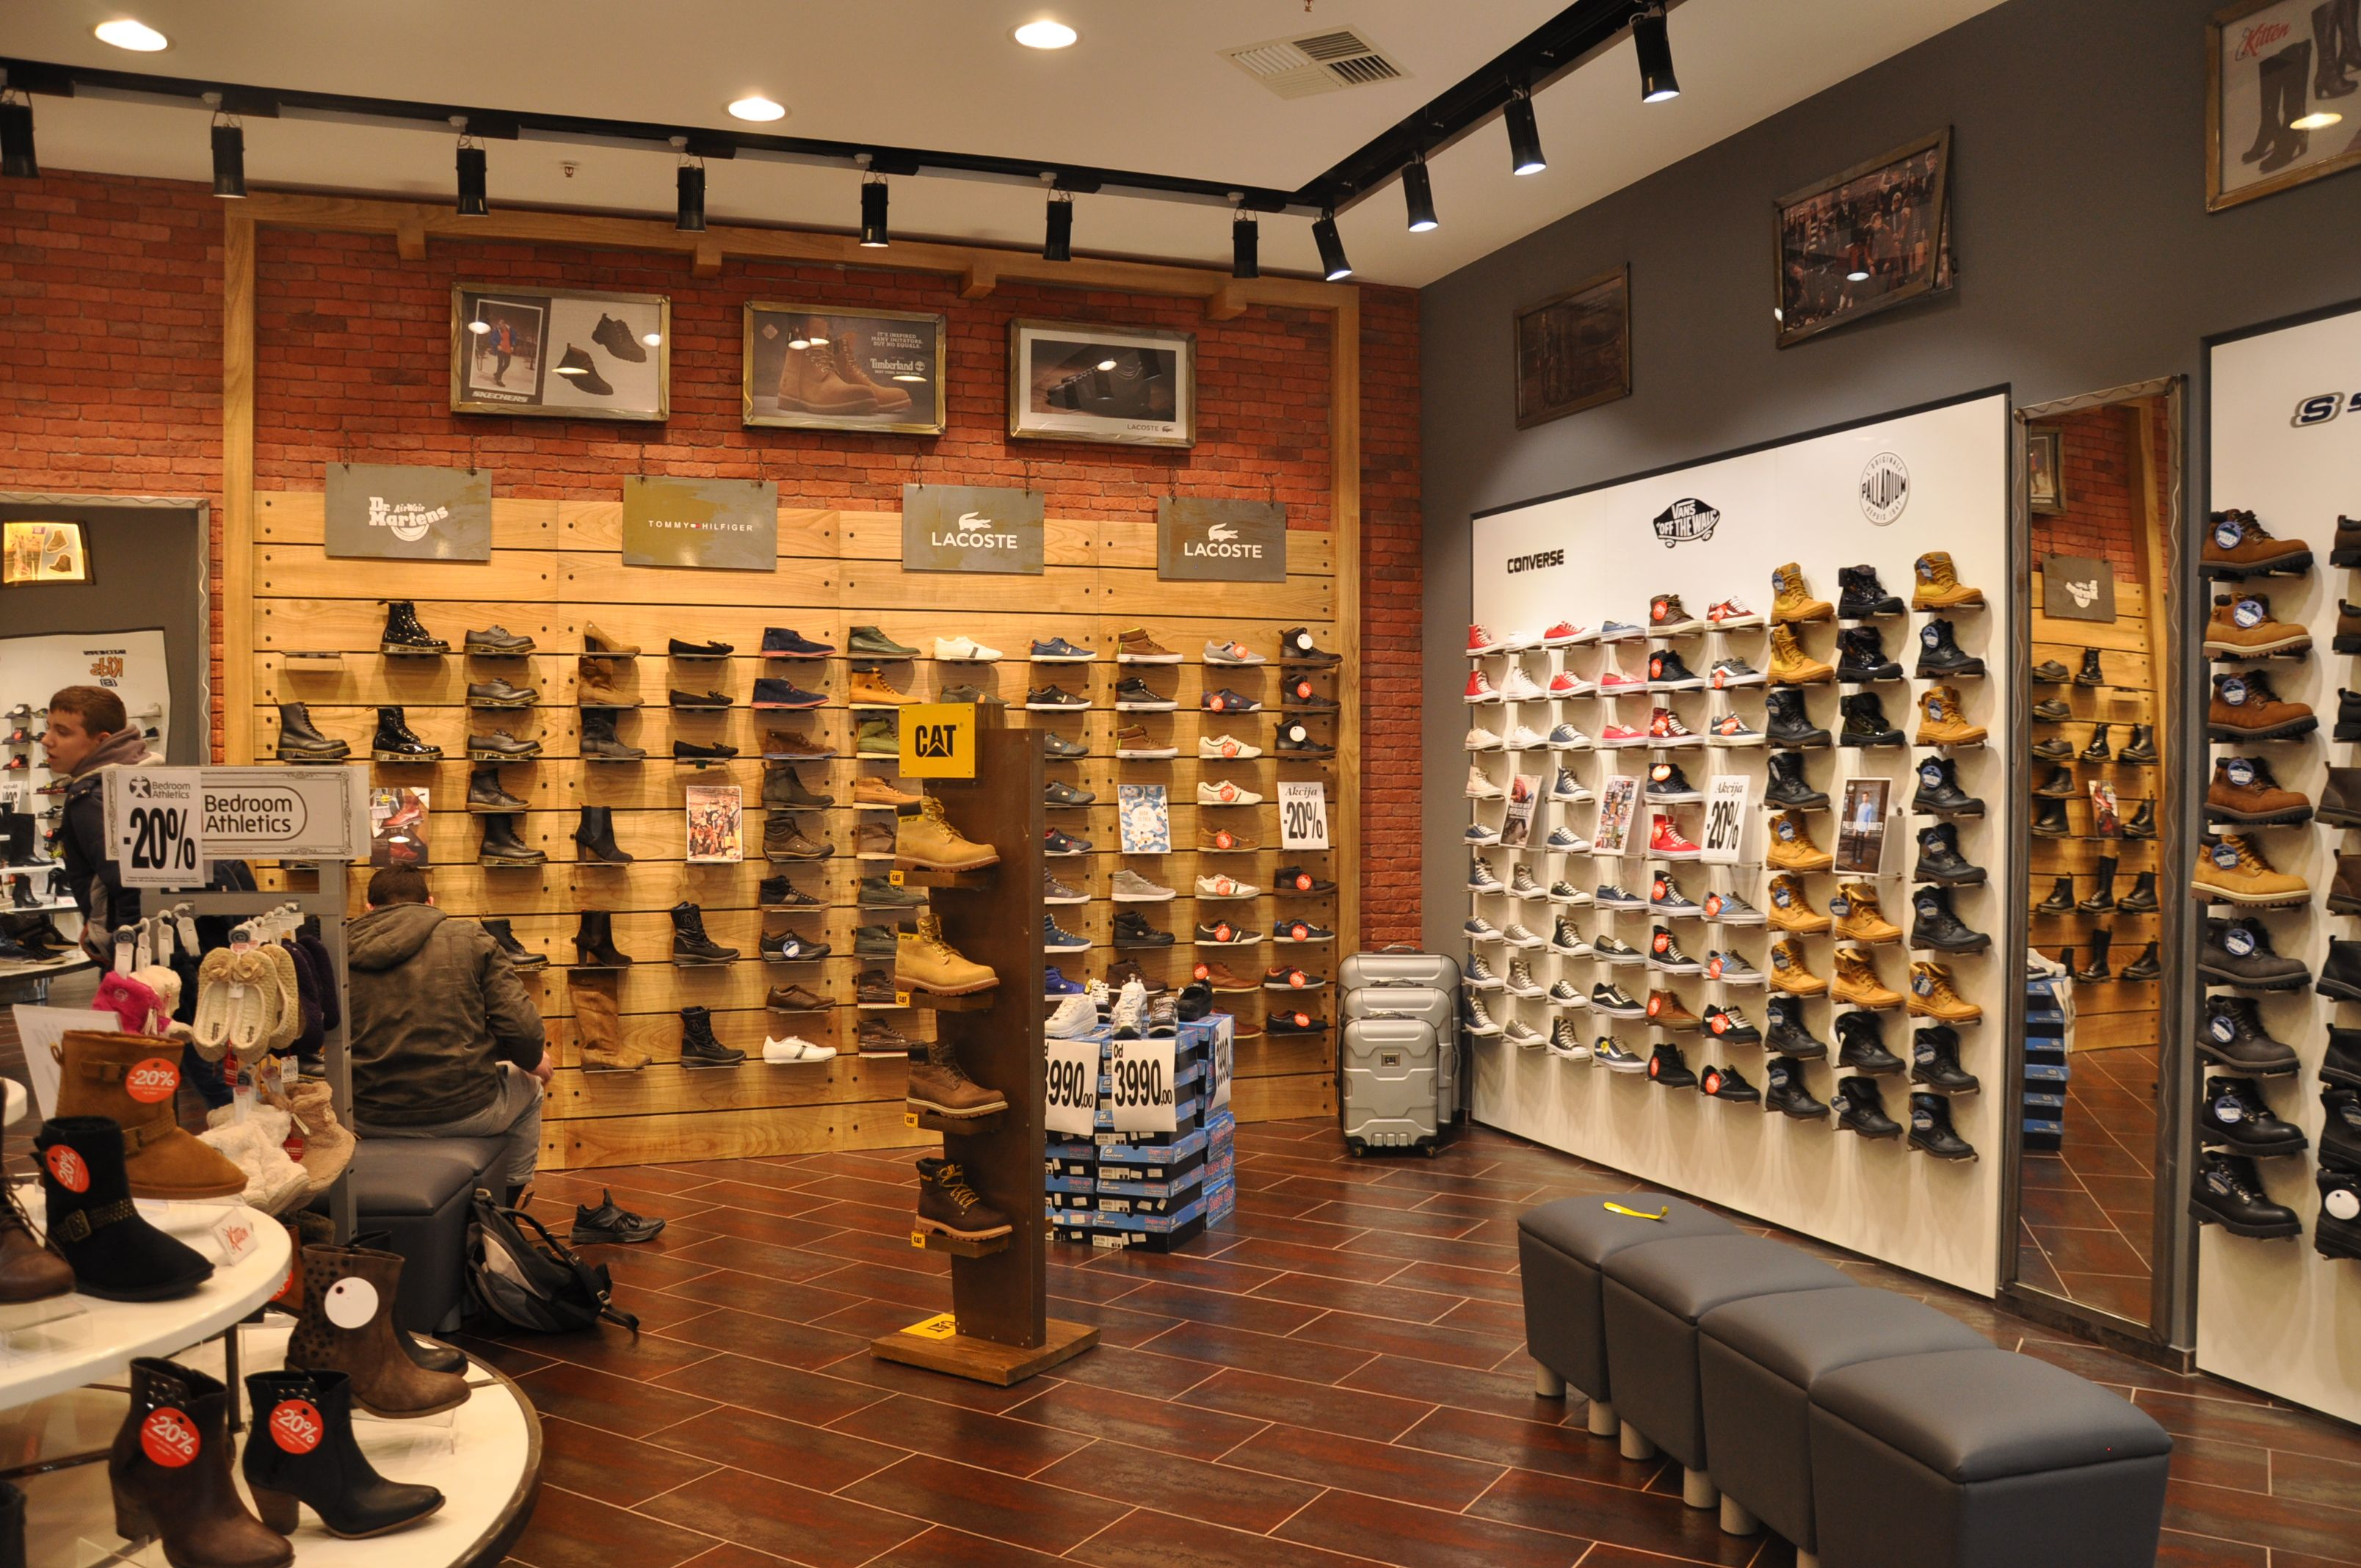 Pin on Sport stores